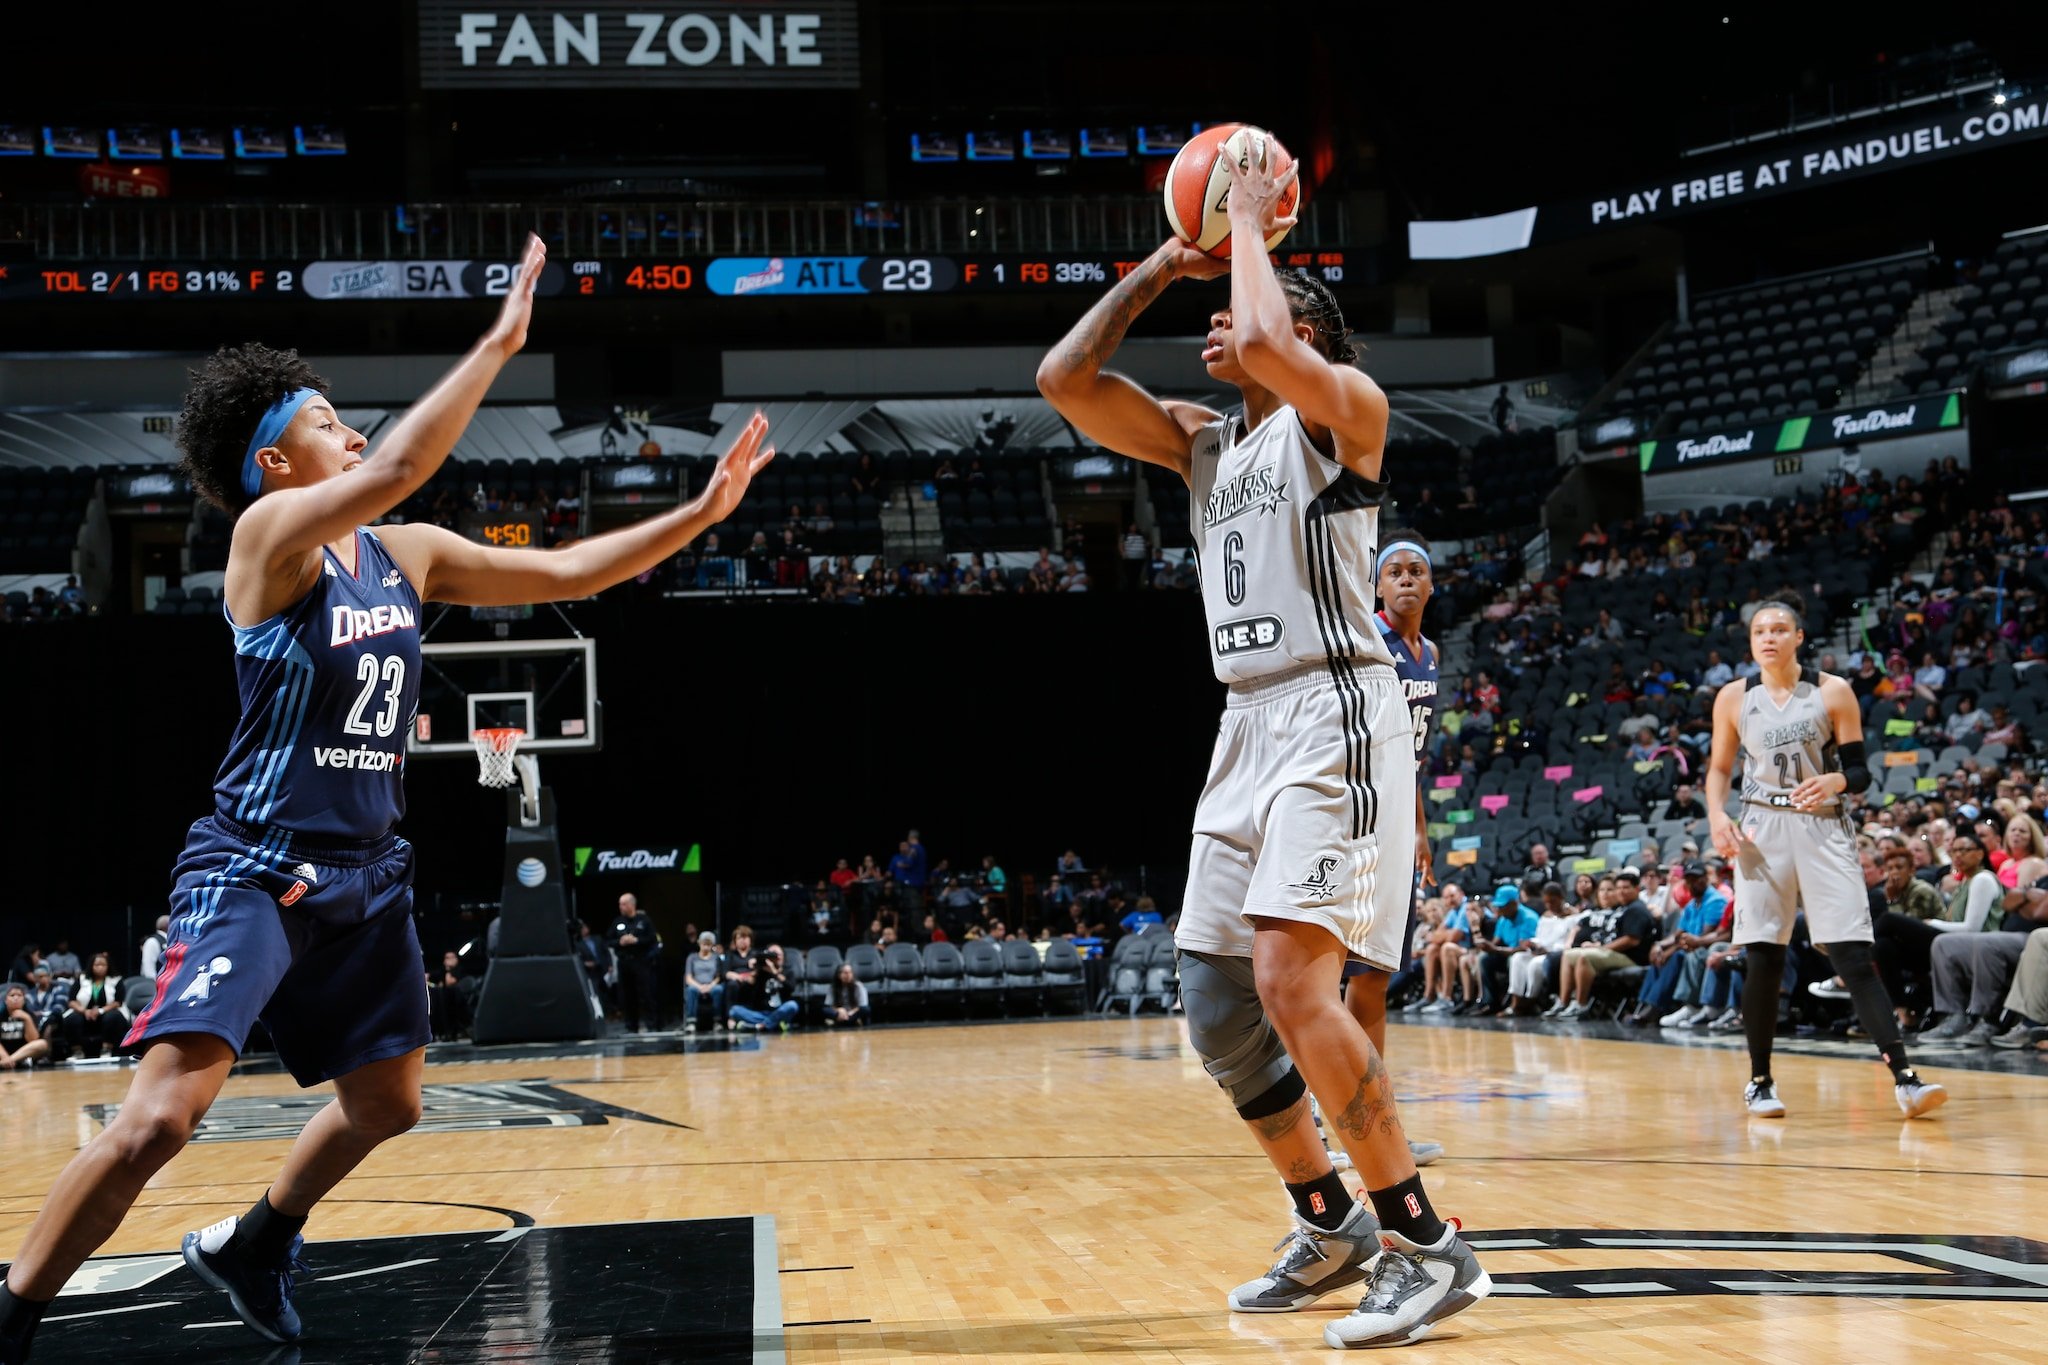 SAN ANTONIO, TX - MAY 14: Alex Montgomery #6 of the San Antonio Stars defends the balll against the Atlanta Dream during the game on May 14, 2016 at AT&T Center in San Antonio, Texas. NOTE TO USER: User expressly acknowledges and agrees that, by downloading and or using this Photograph, user is consenting to the terms and conditions of the Getty Images License Agreement. Mandatory Copyright Notice: Copyright 2016 NBAE (Photo by Chris Covatta/NBAE via Getty Images)